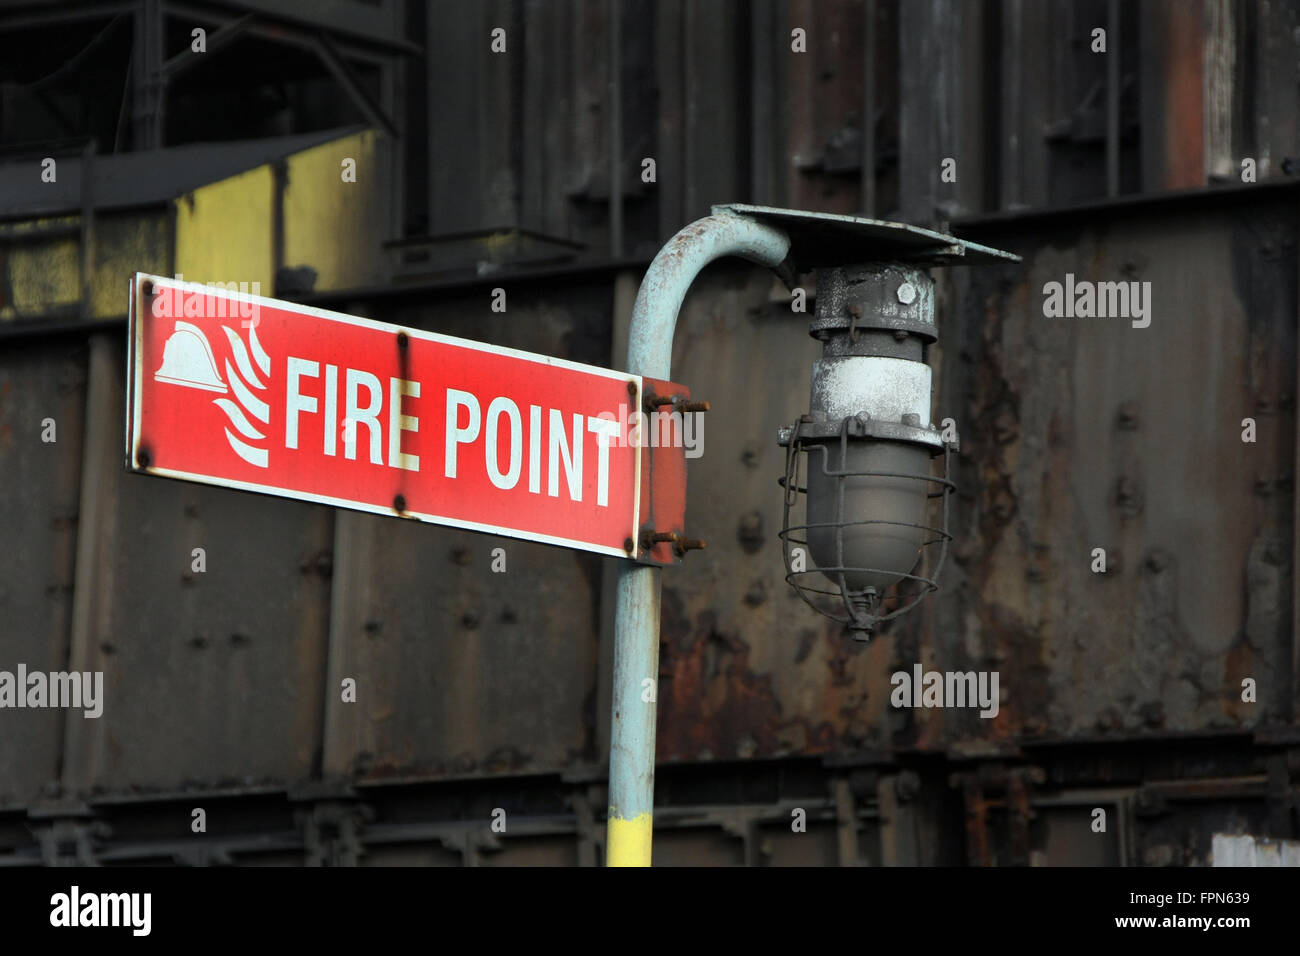 Fire point sign with light. - Stock Image